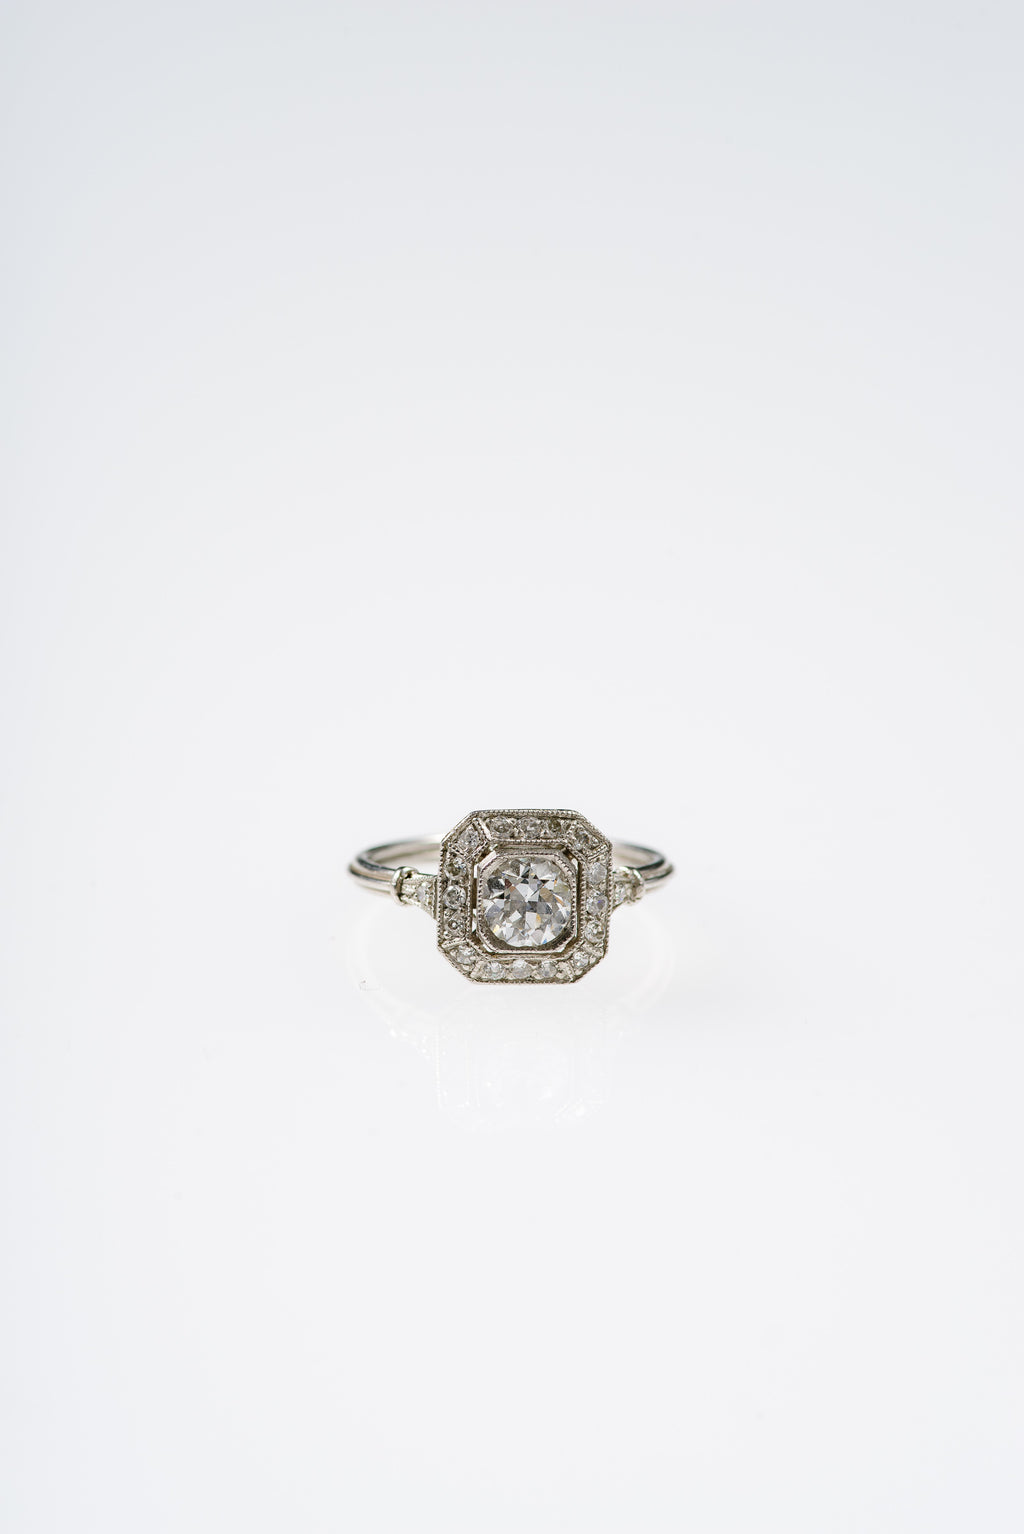 VINTAGE Art Deco Era Halo Ring in Platinum Gold and Diamond